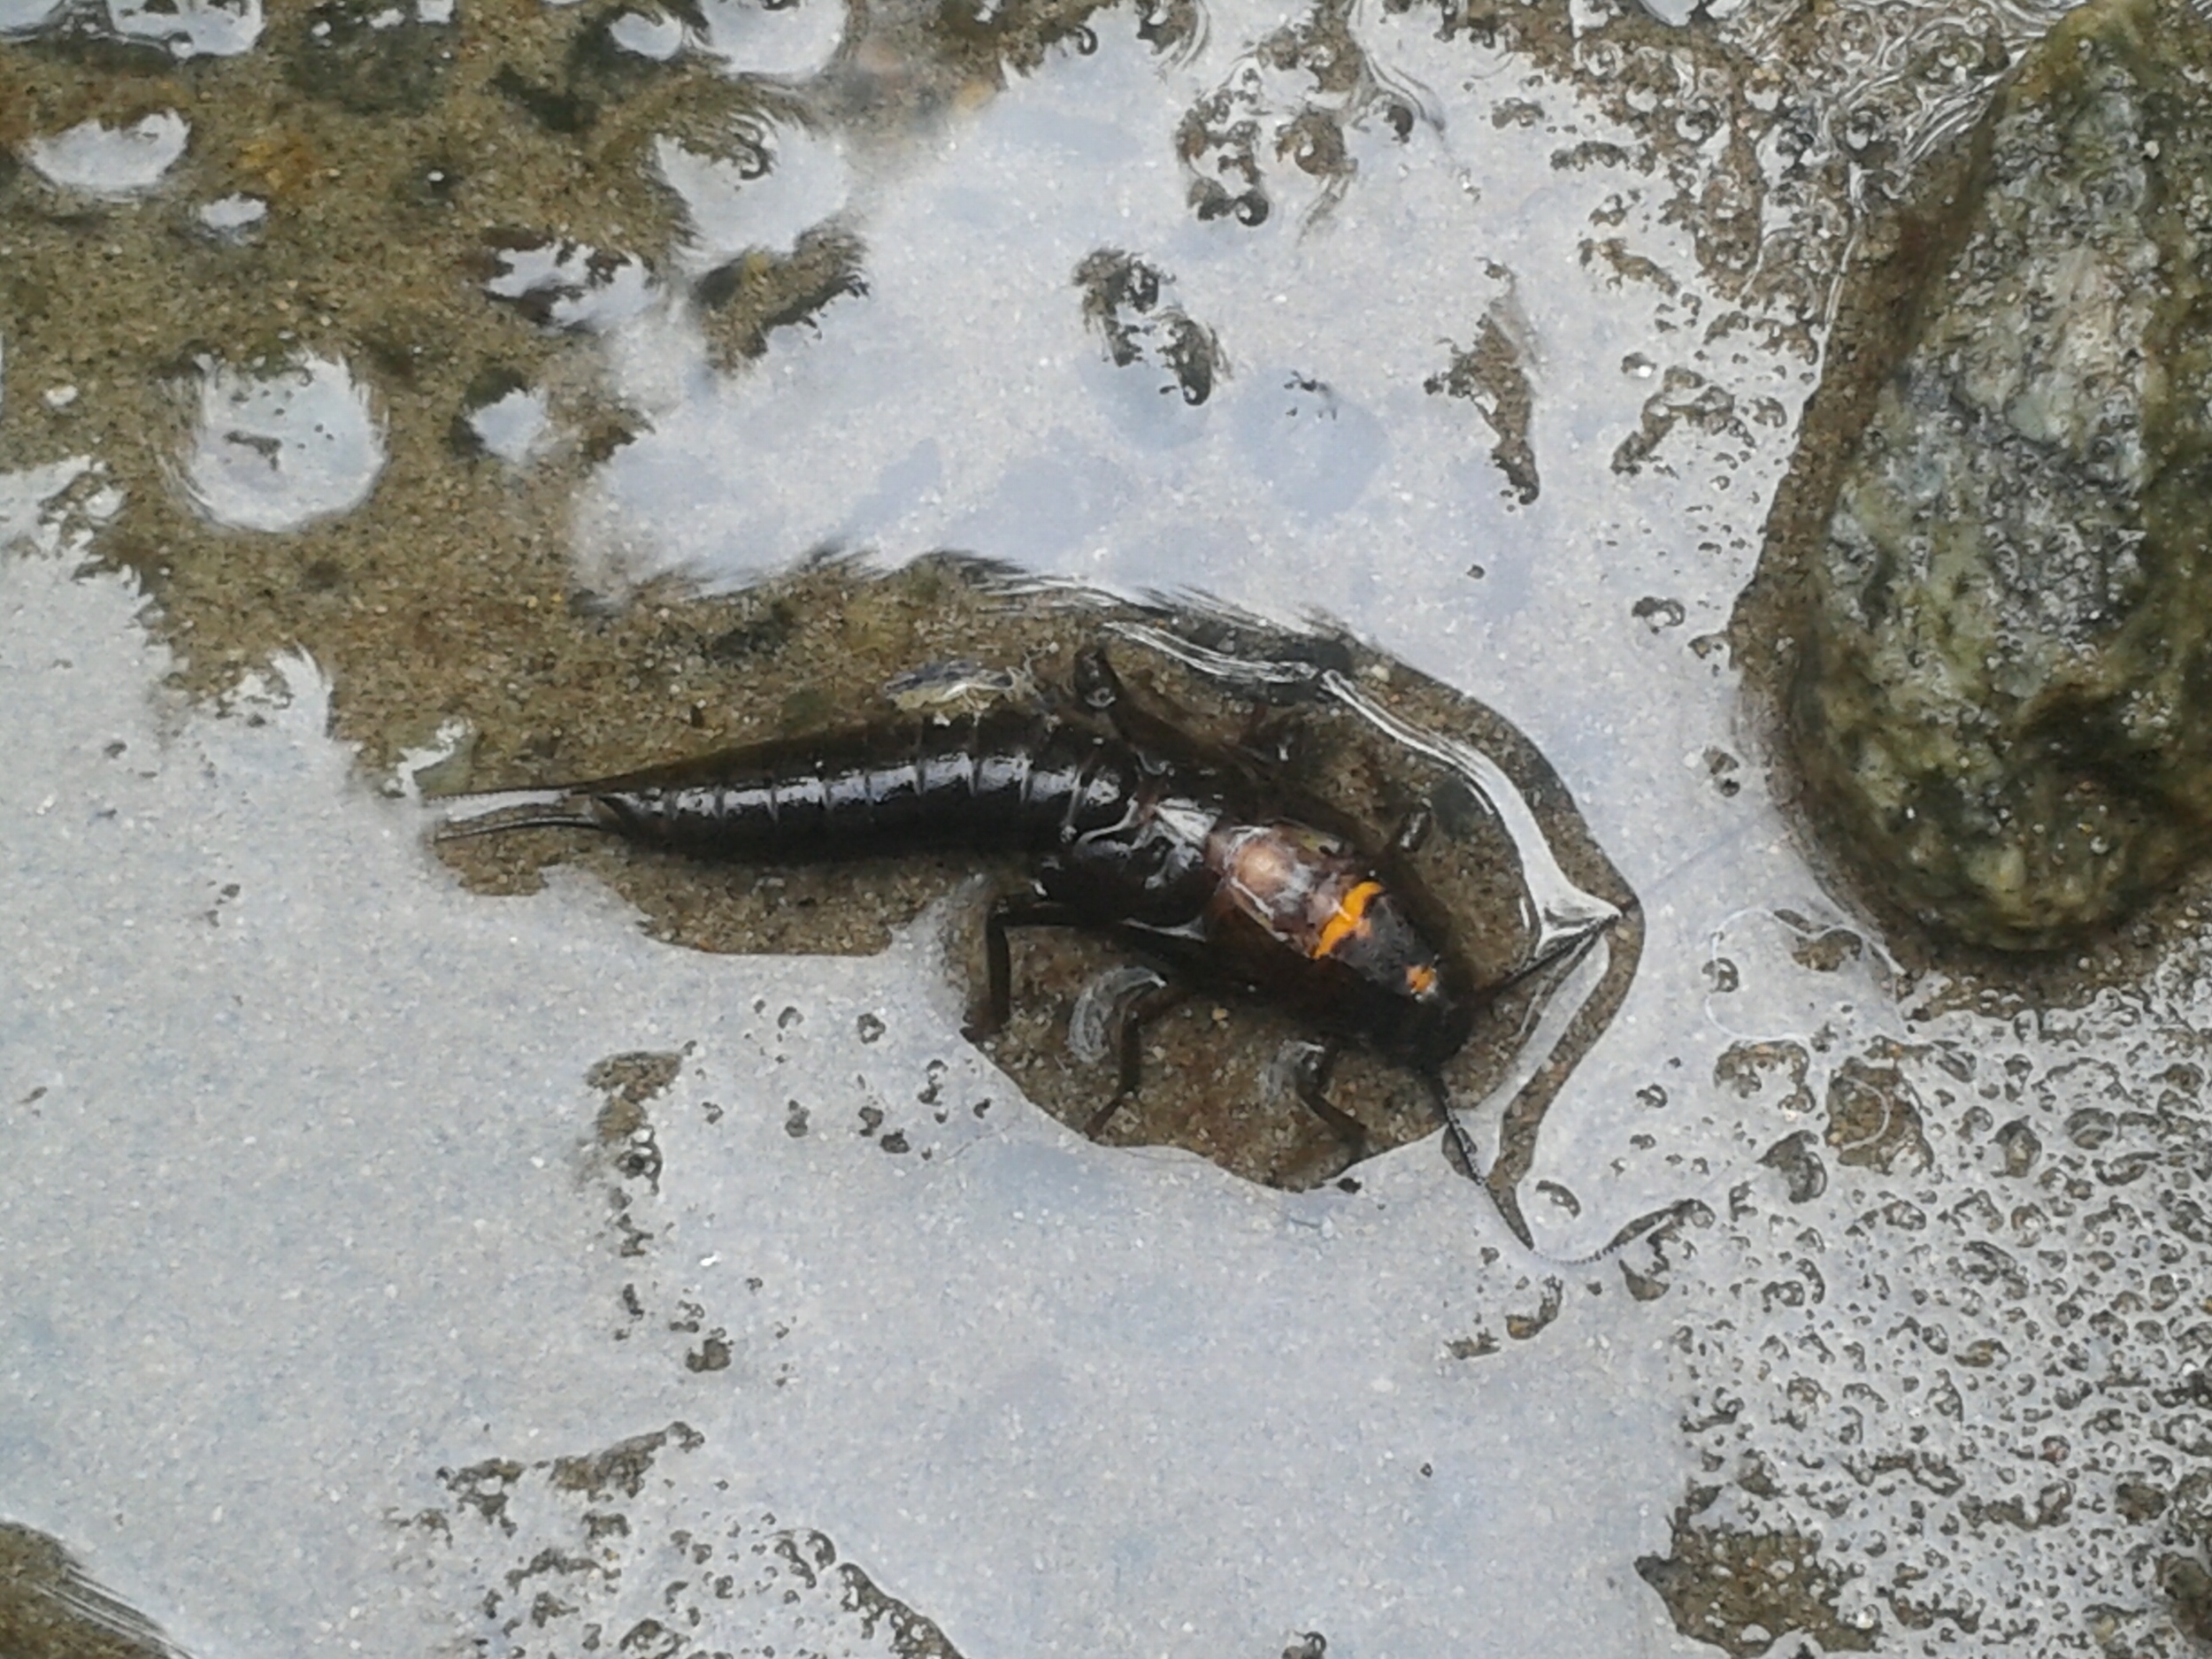 This little creature was spotted by Hoy Creek in March 2016. We think it's a cockroach stonefly nymph. It looks like it's emerging. They crawl out of the water and emerge as an adult. We believe the orange part shows where the exoskeleton was splitting on it's back to shed so it can emerge. It was approx. 4cm in length. (Photo: Rodney Lee / HSWS)